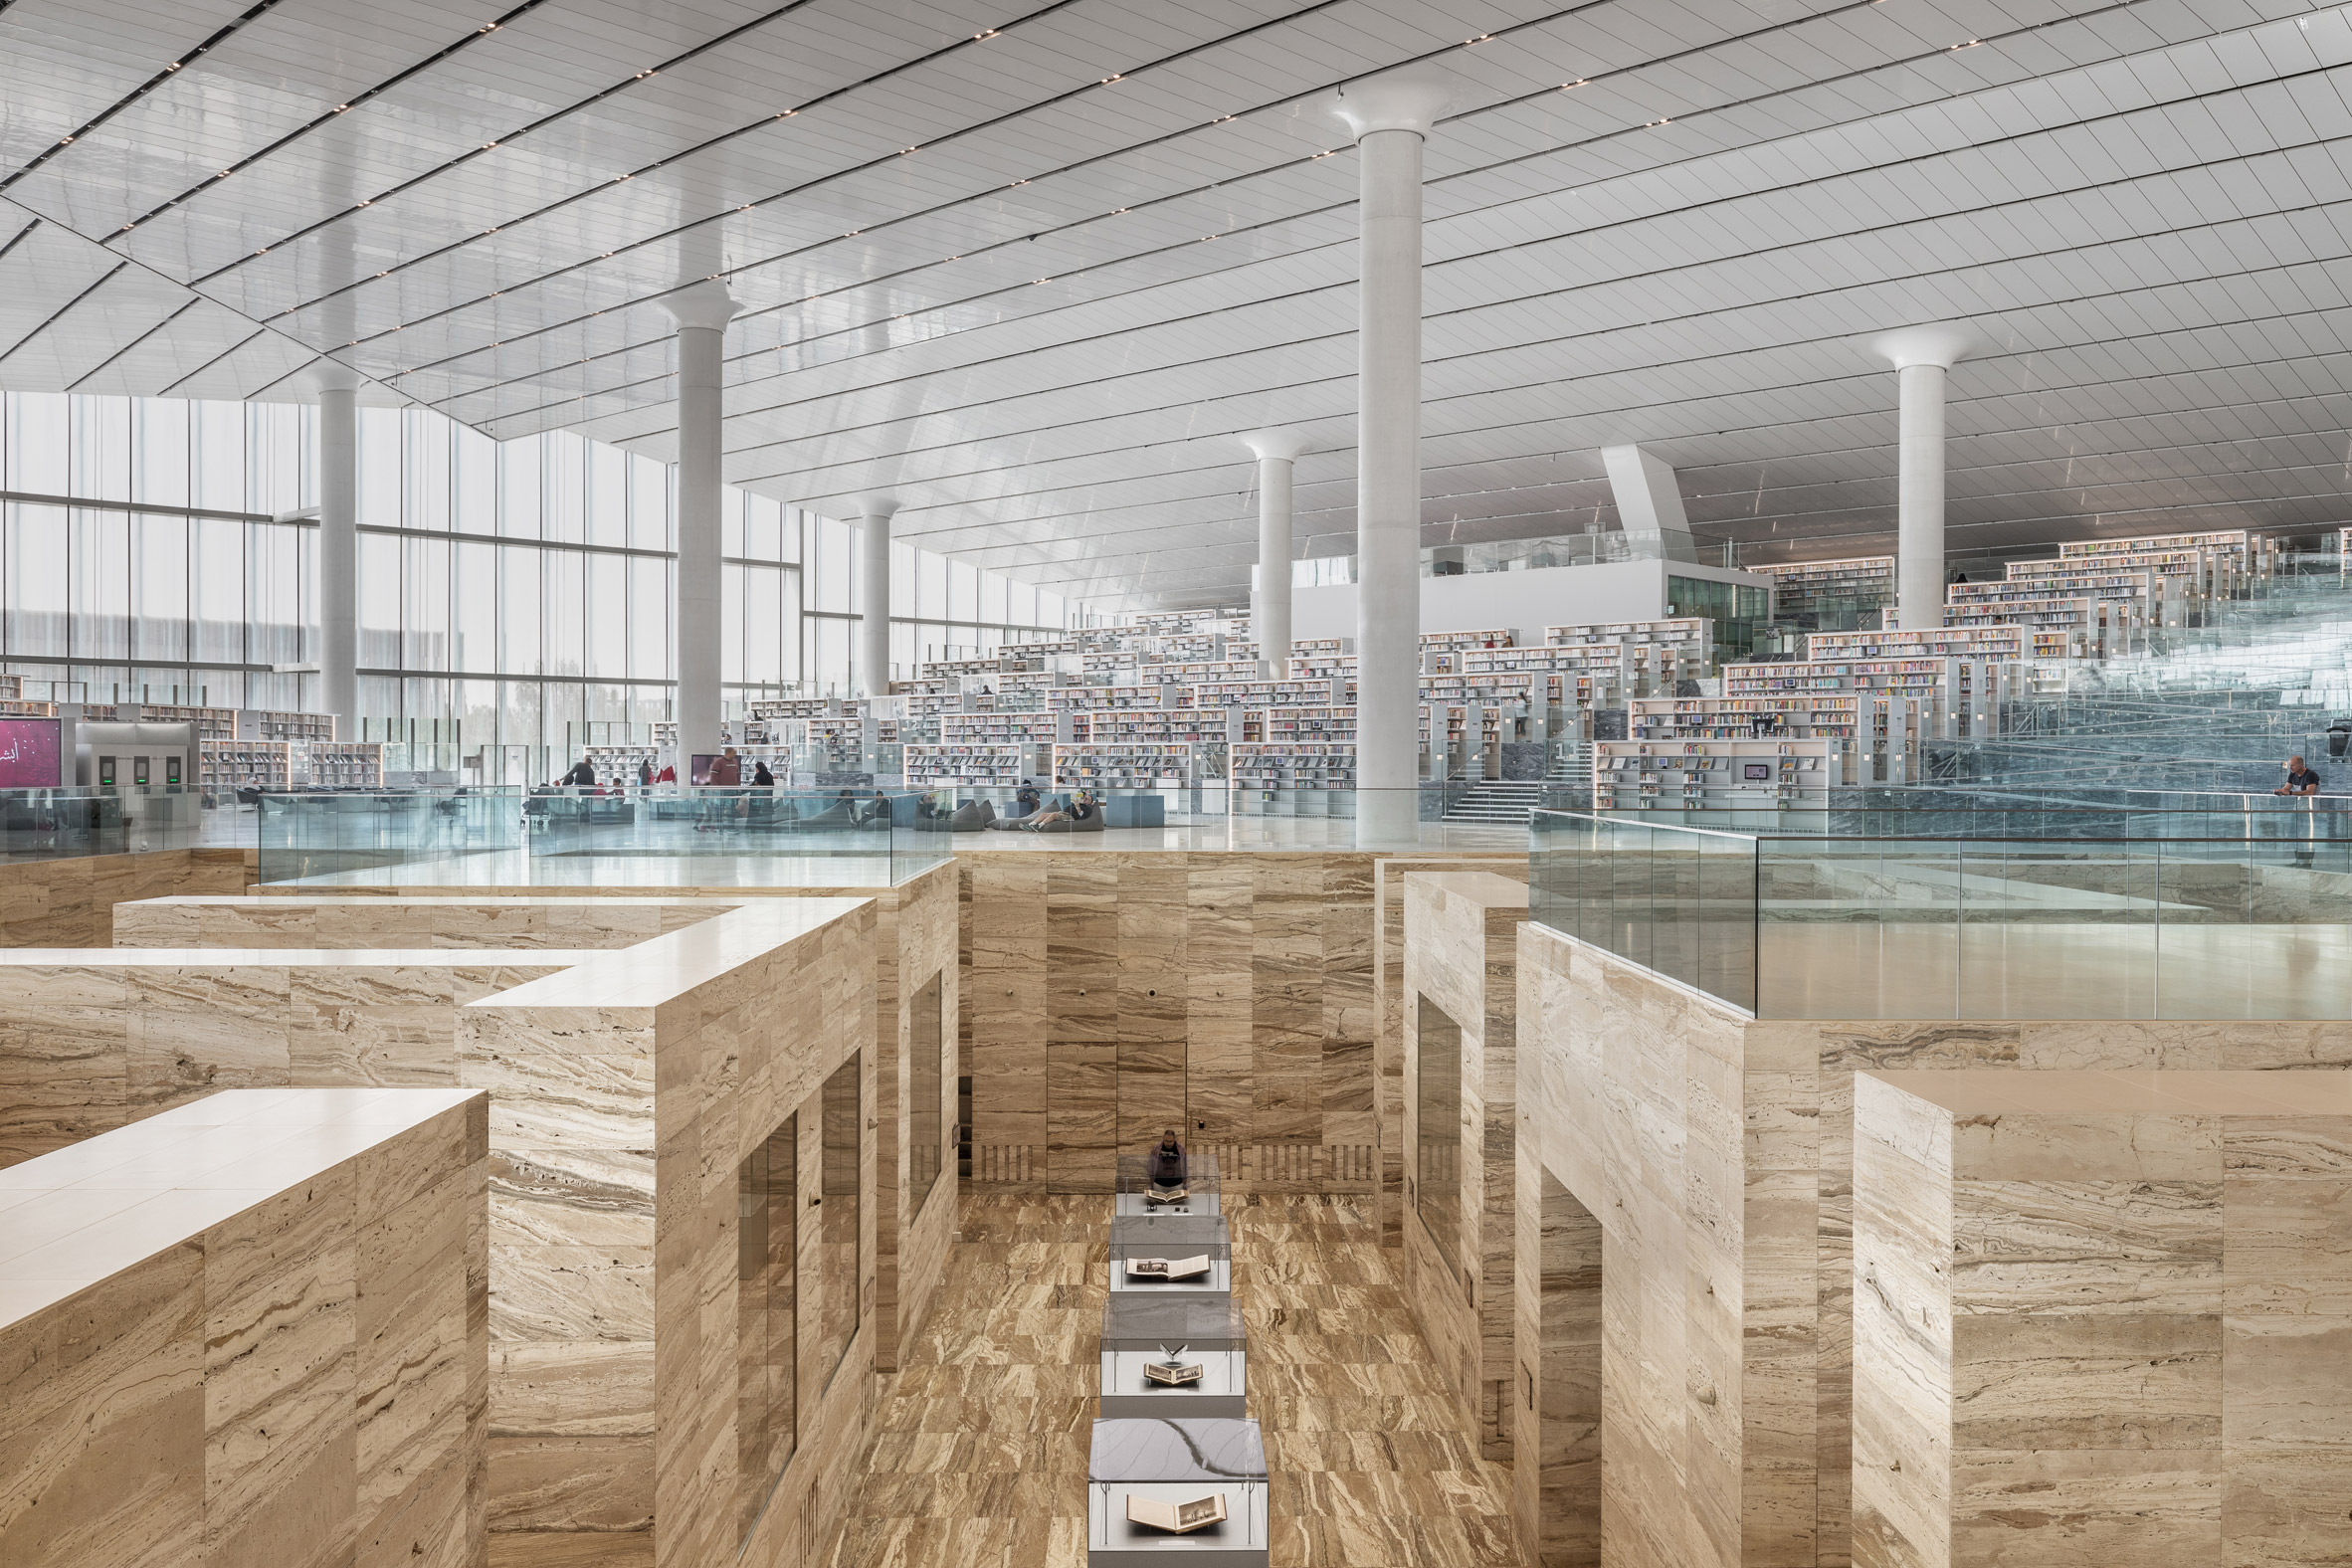 Qatar National Library by OMA